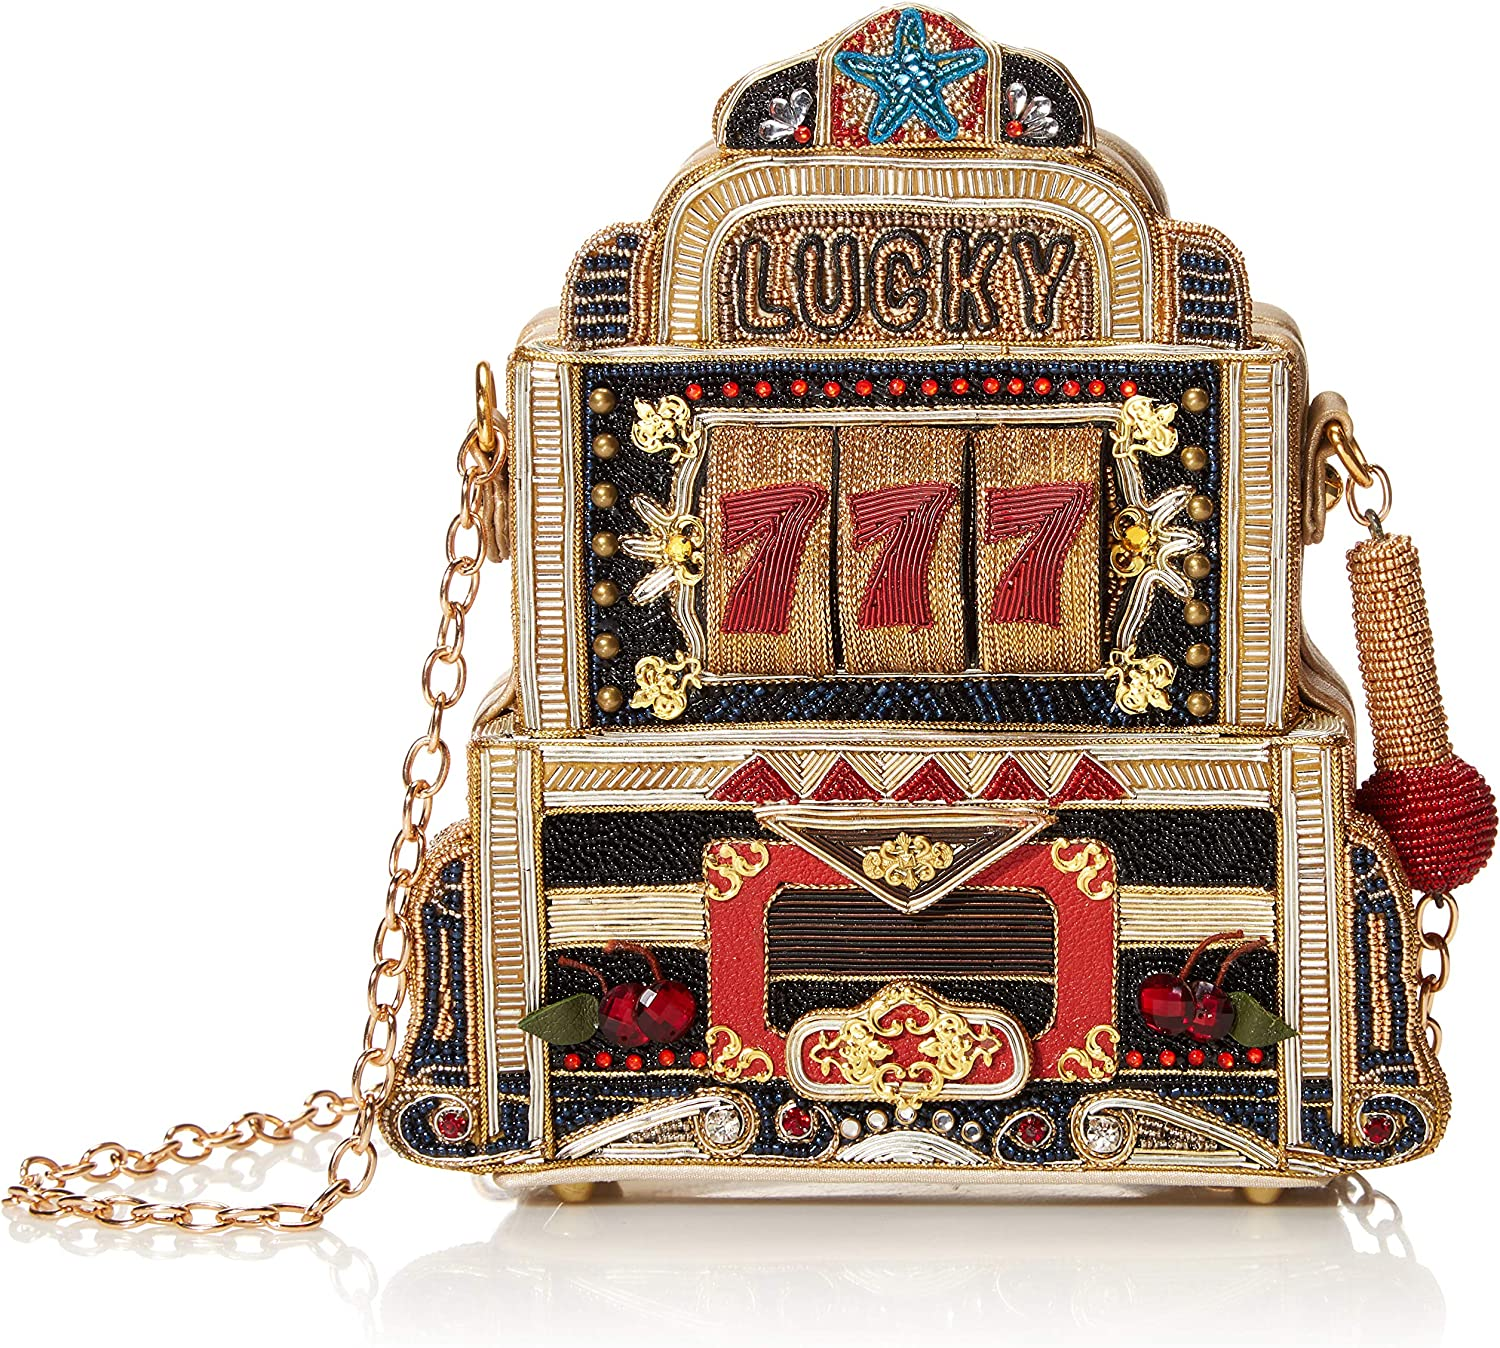 Mary Frances Lucky 7 Machine New sales Gold Handbag Slot New Orleans Mall